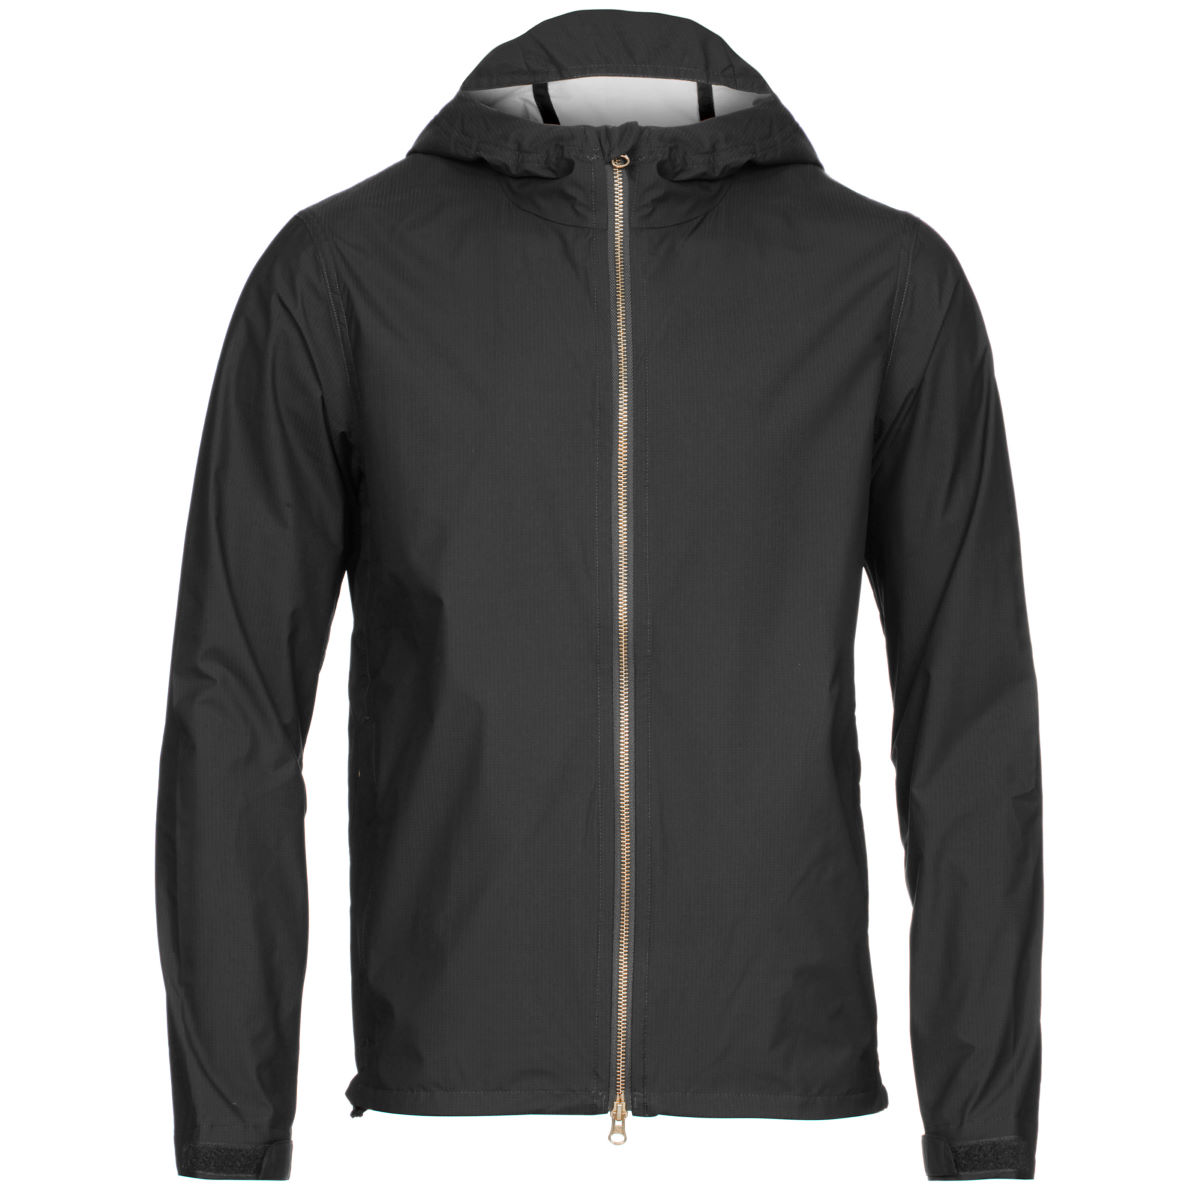 Image of Veste Levi's Commuter Echelon Windbreaker - S Jet Black | Vestes